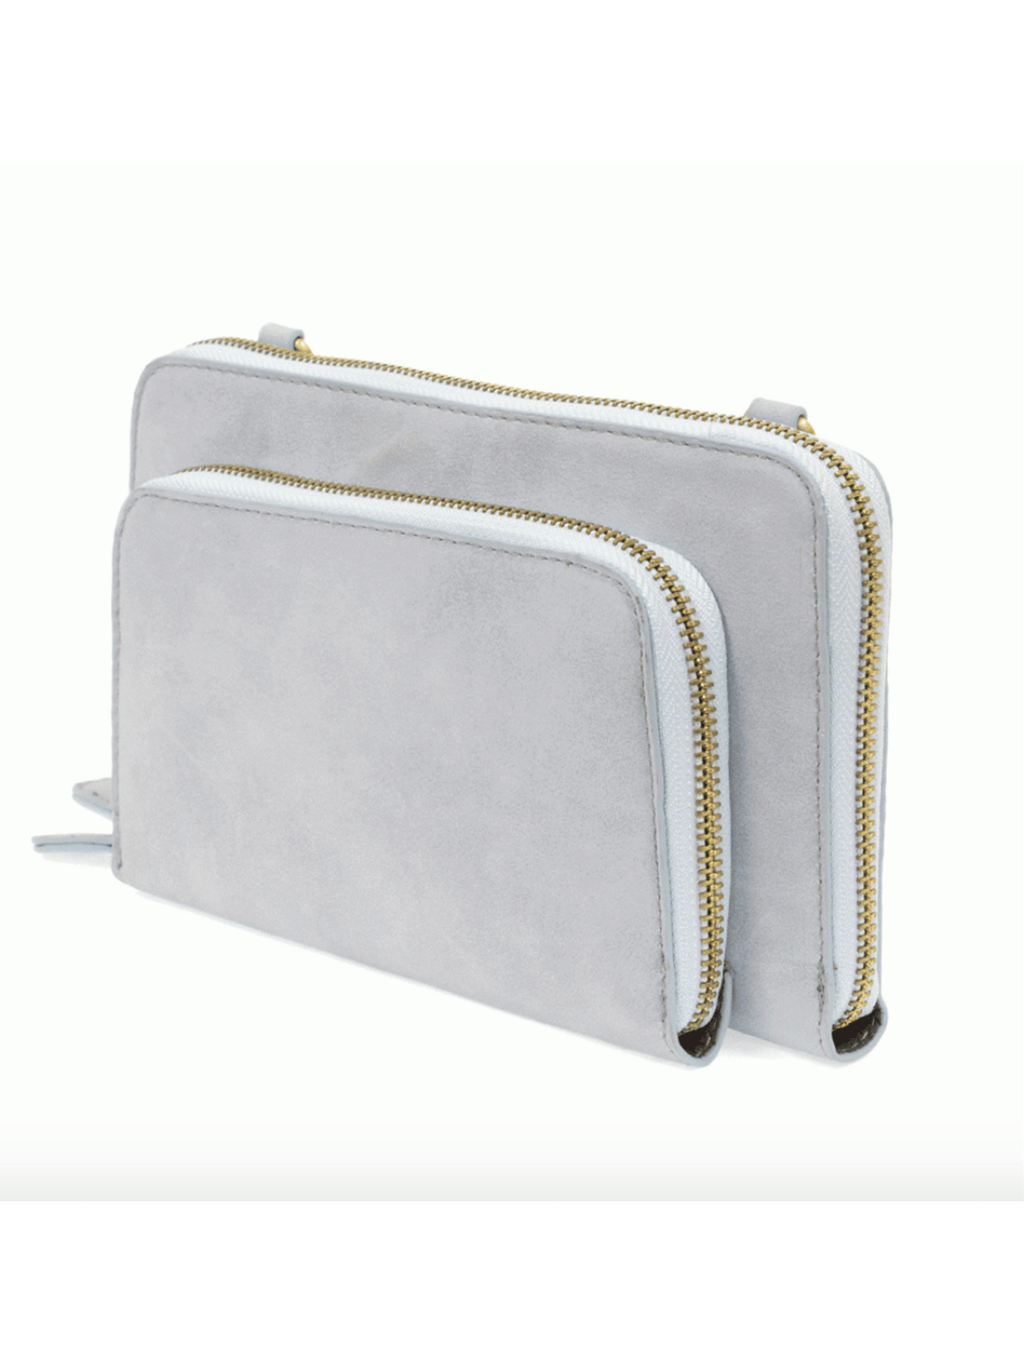 Mini Convertible Zip Wristlet - Ice Blue